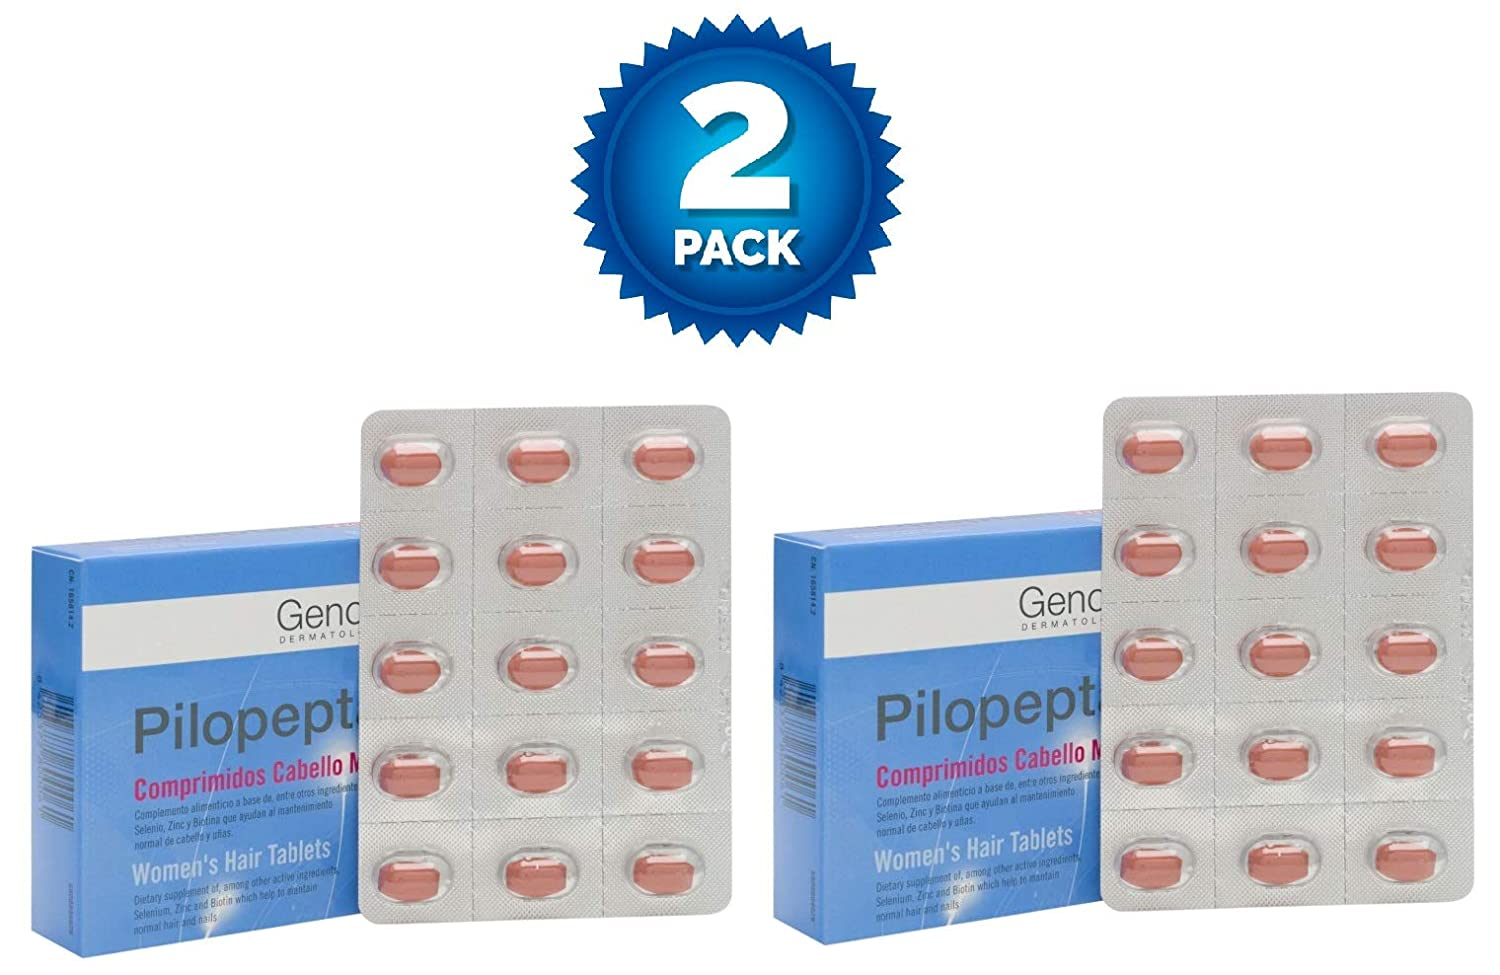 Amazon.com: 2 Pack Genové Pilopeptan Woman 30 x 2 (60 Tablets) - Hair Regrowth Treatment - Stop Hair Loss - Nail and Hair Treatment: Beauty